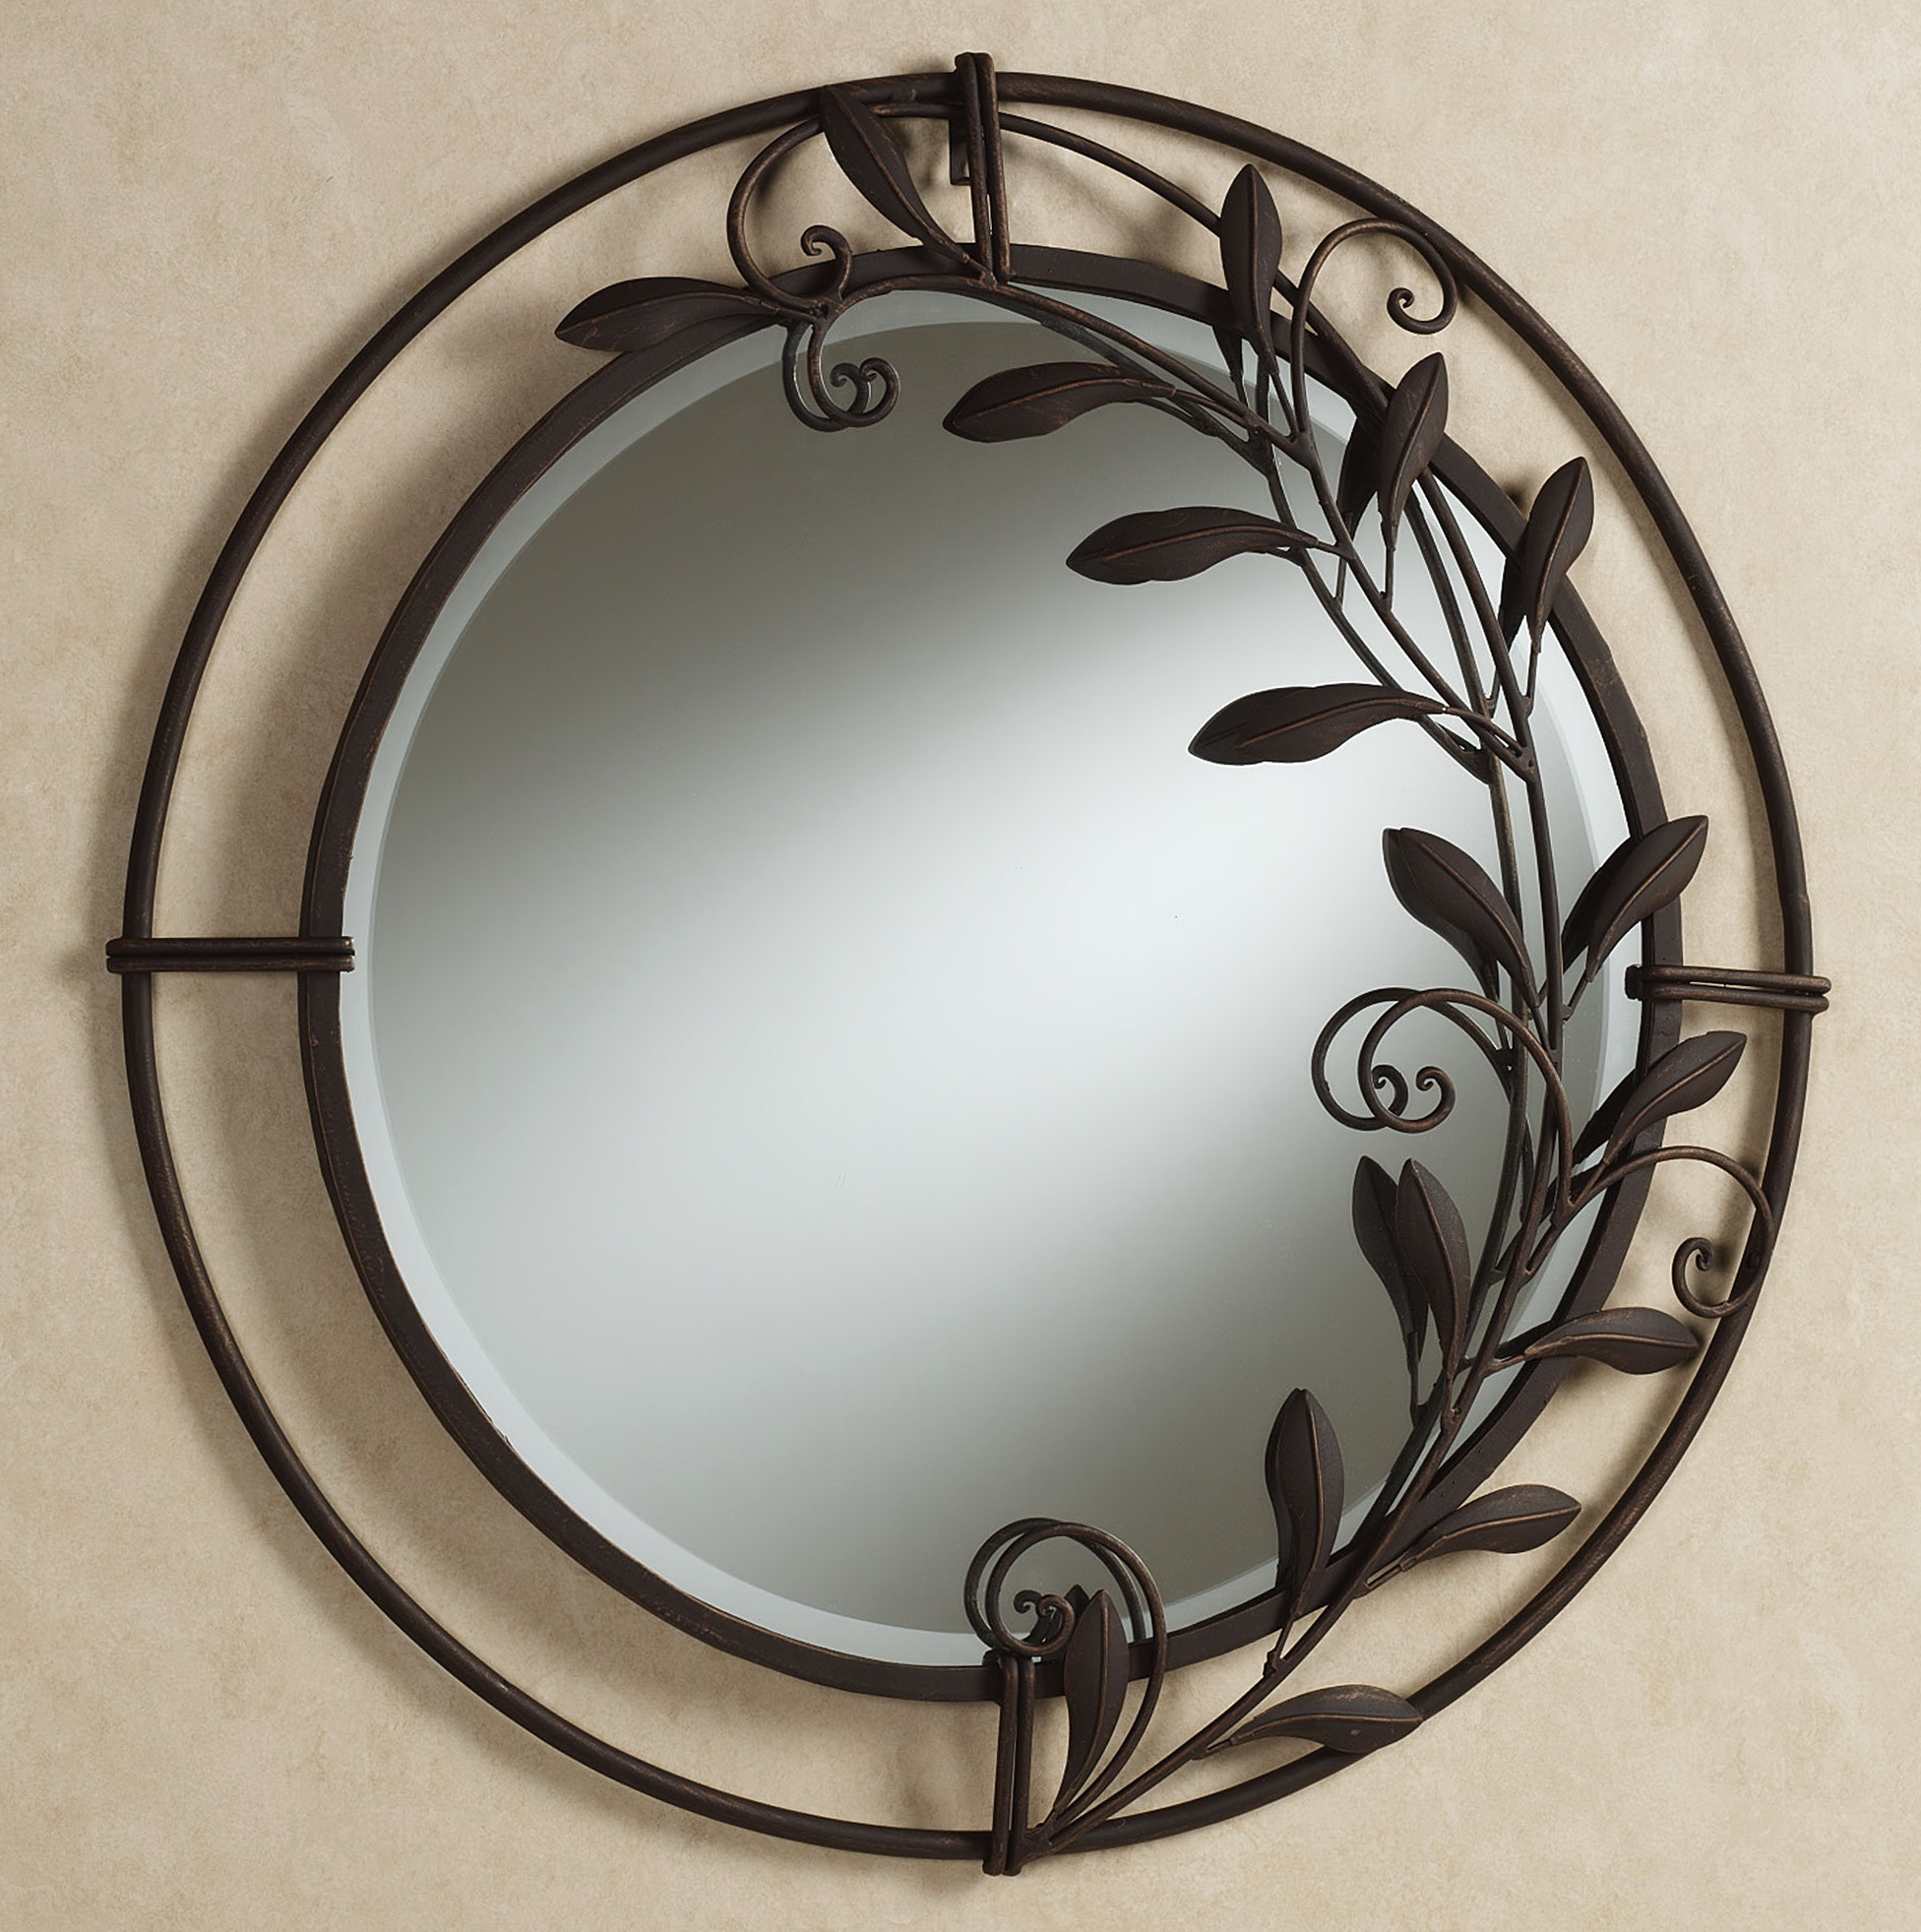 Round Mirrors For Sale Round Wall Mirrors For Sale Home Design Ideas